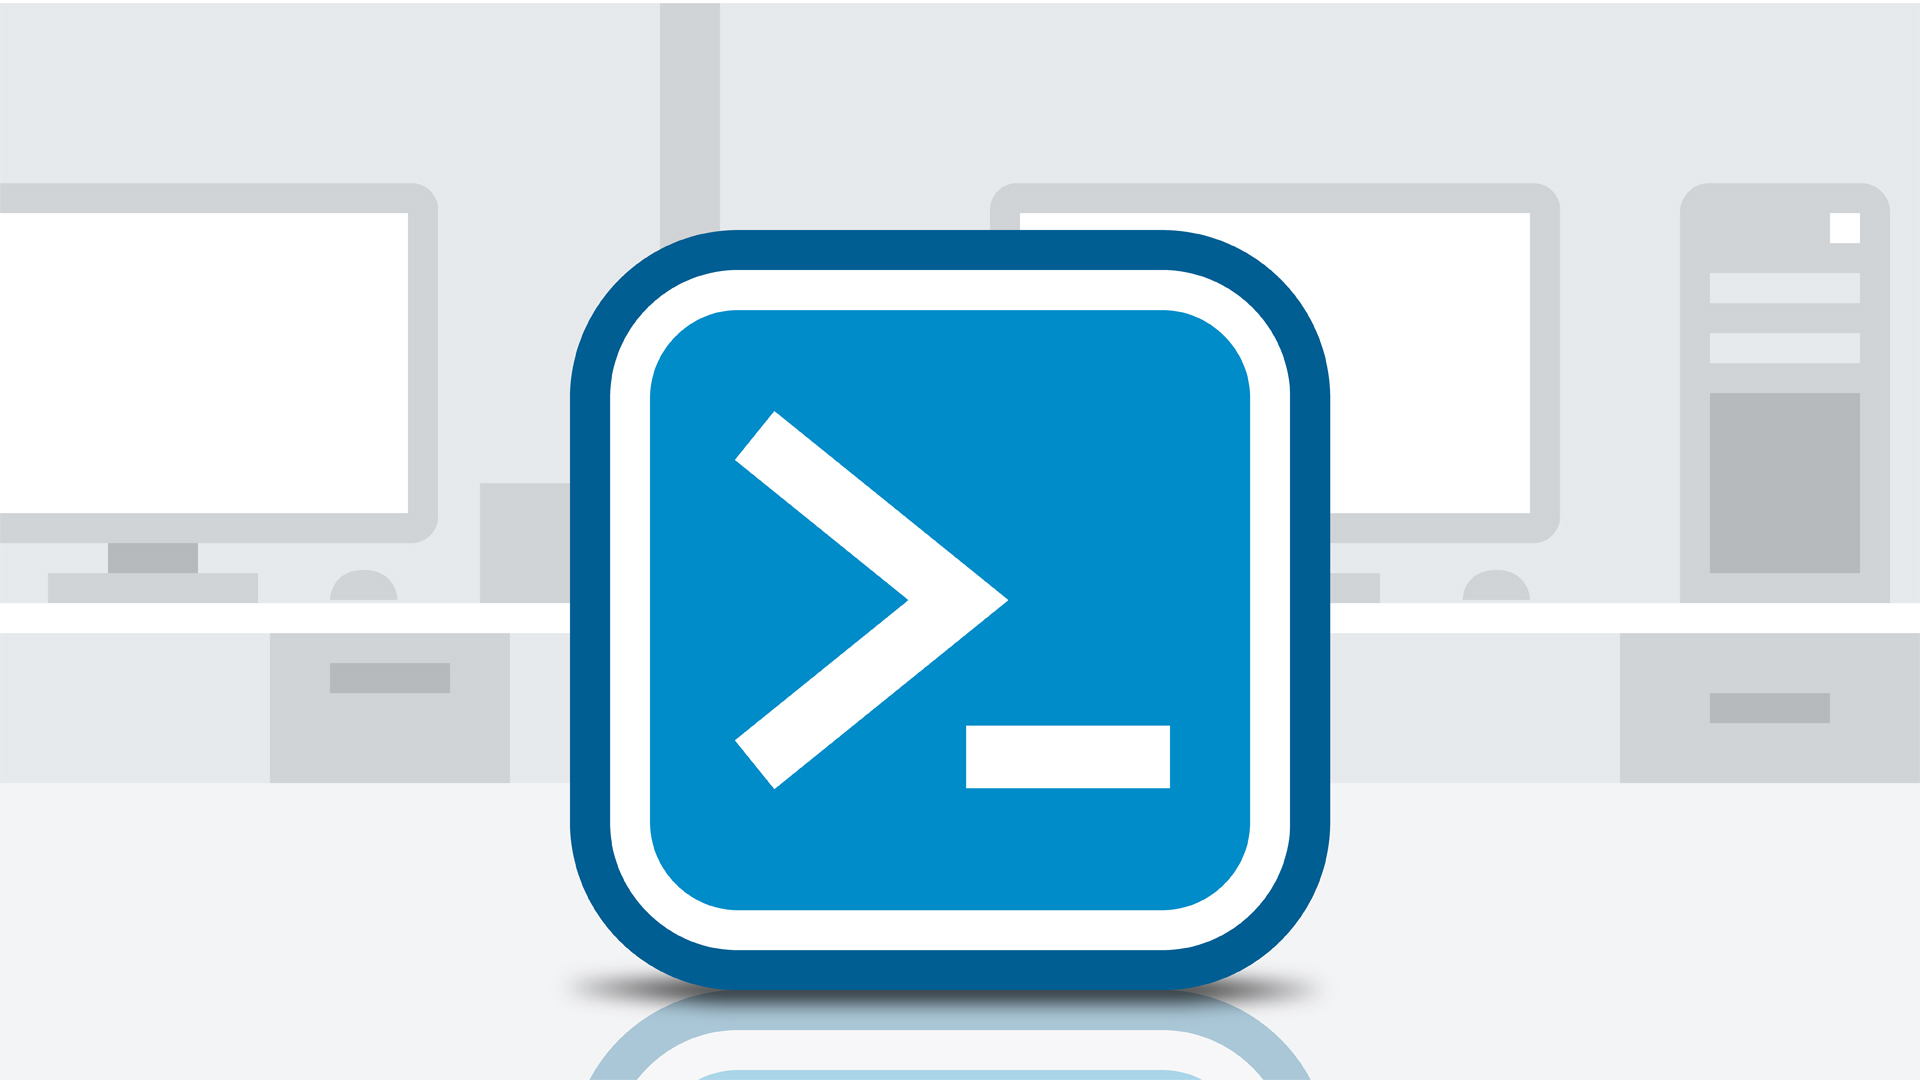 PowerShell - Online Courses, Classes, Training, Tutorials on Lynda